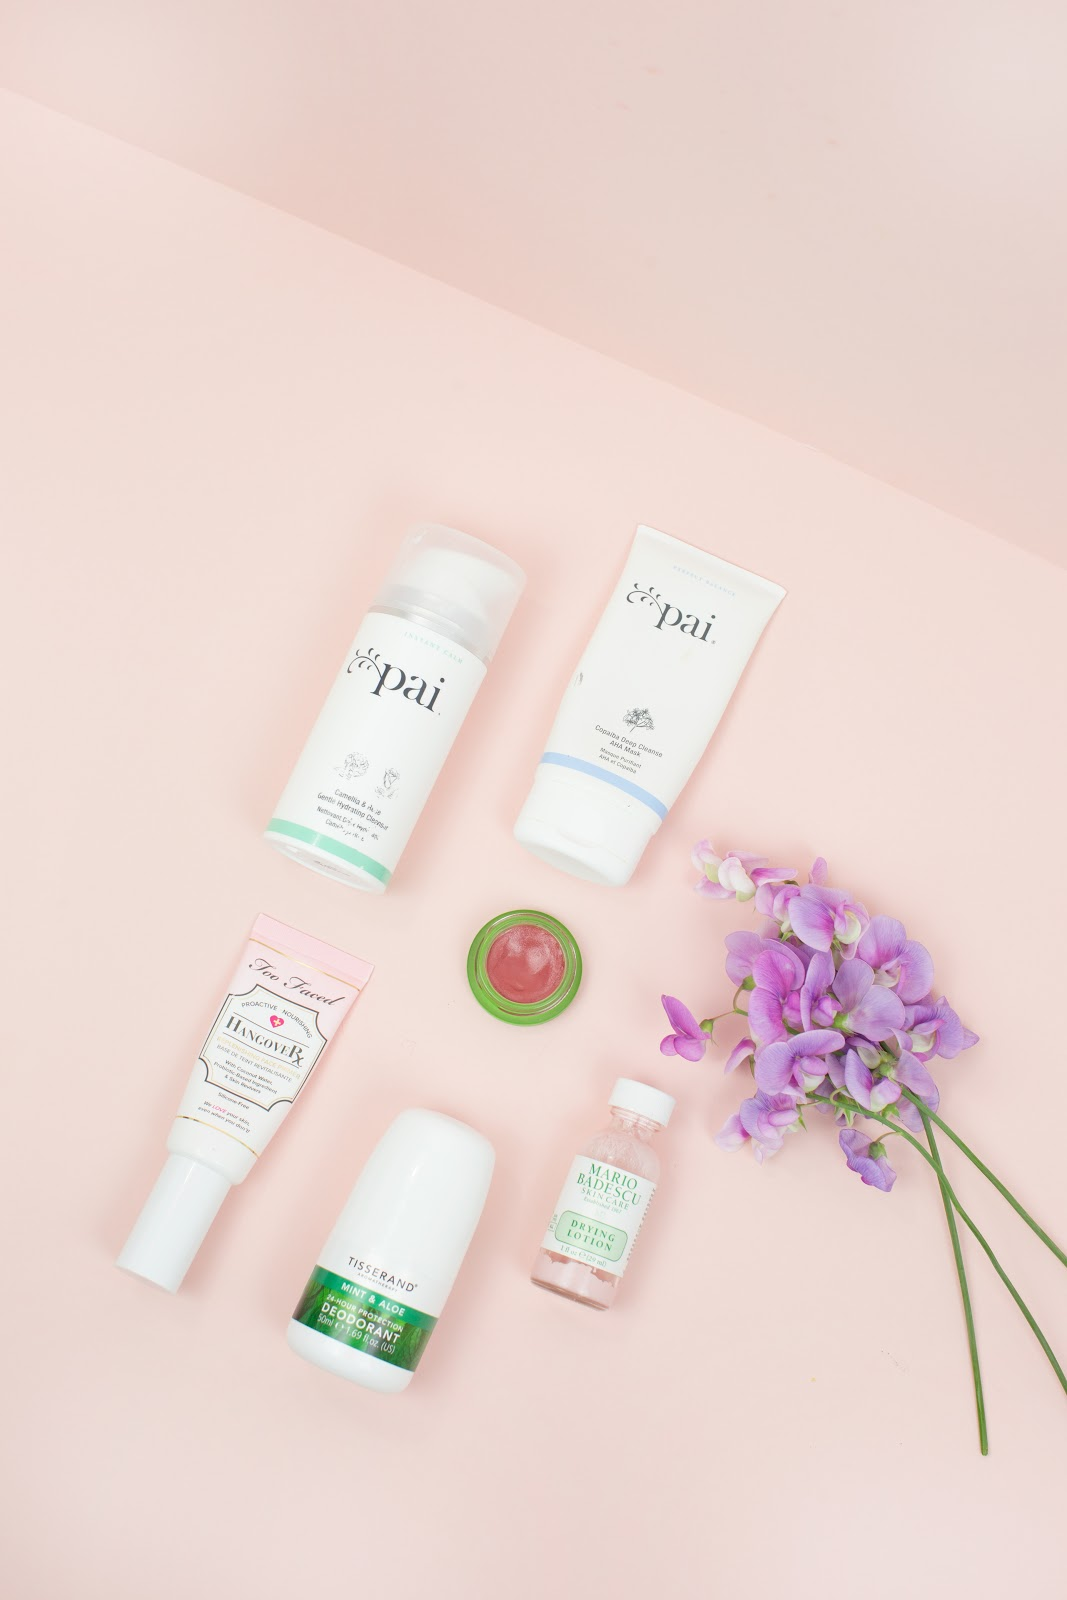 CRUELTY-FREE/VEGAN BEAUTY PRODUCTS I'M LOVING RIGHT NOW